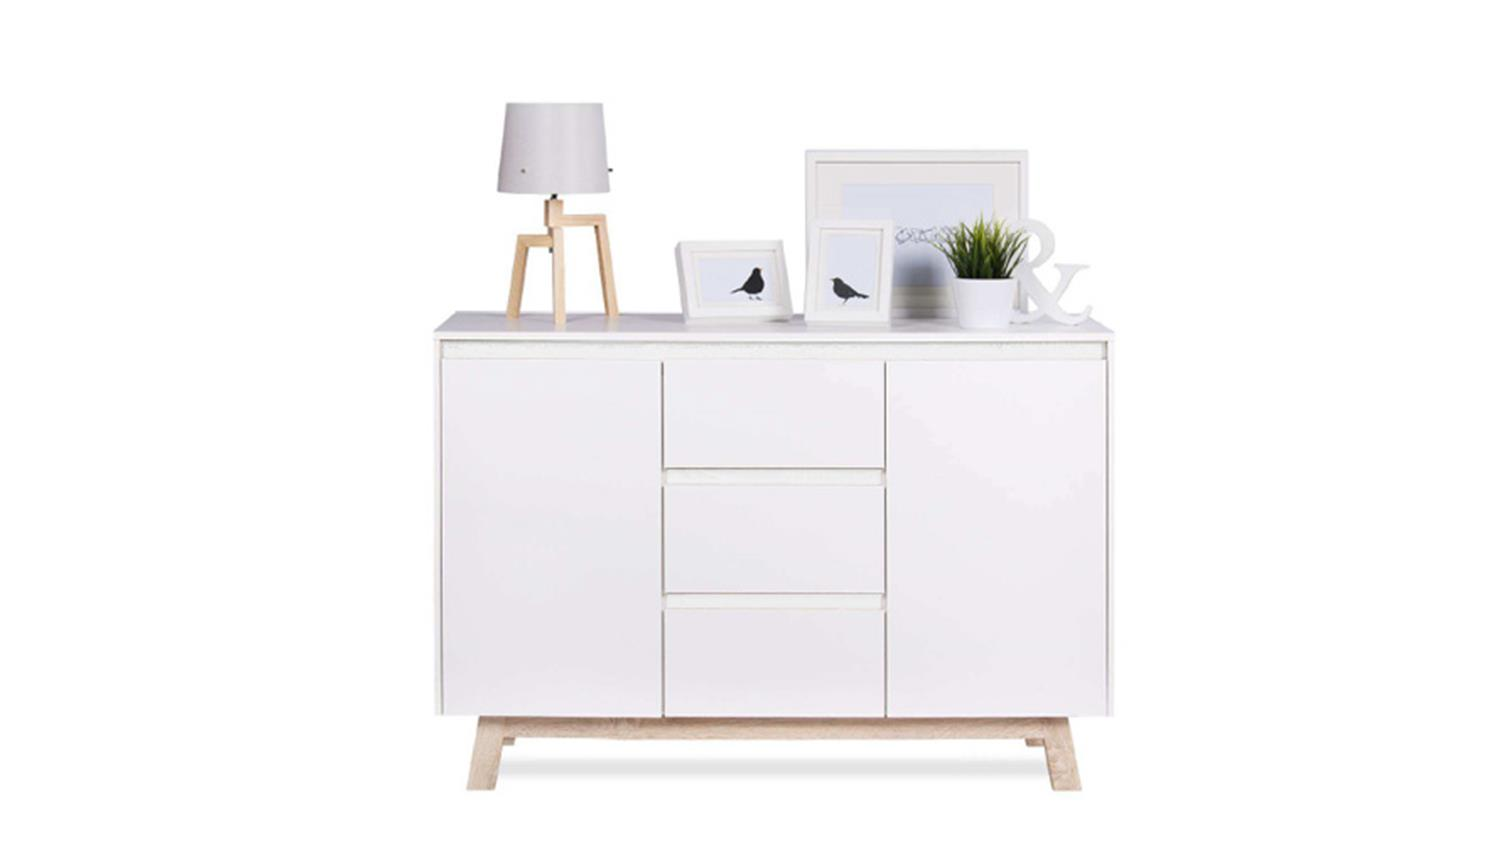 kommode apart 2 sideboard anrichte in wei und sonoma eiche 120 cm. Black Bedroom Furniture Sets. Home Design Ideas